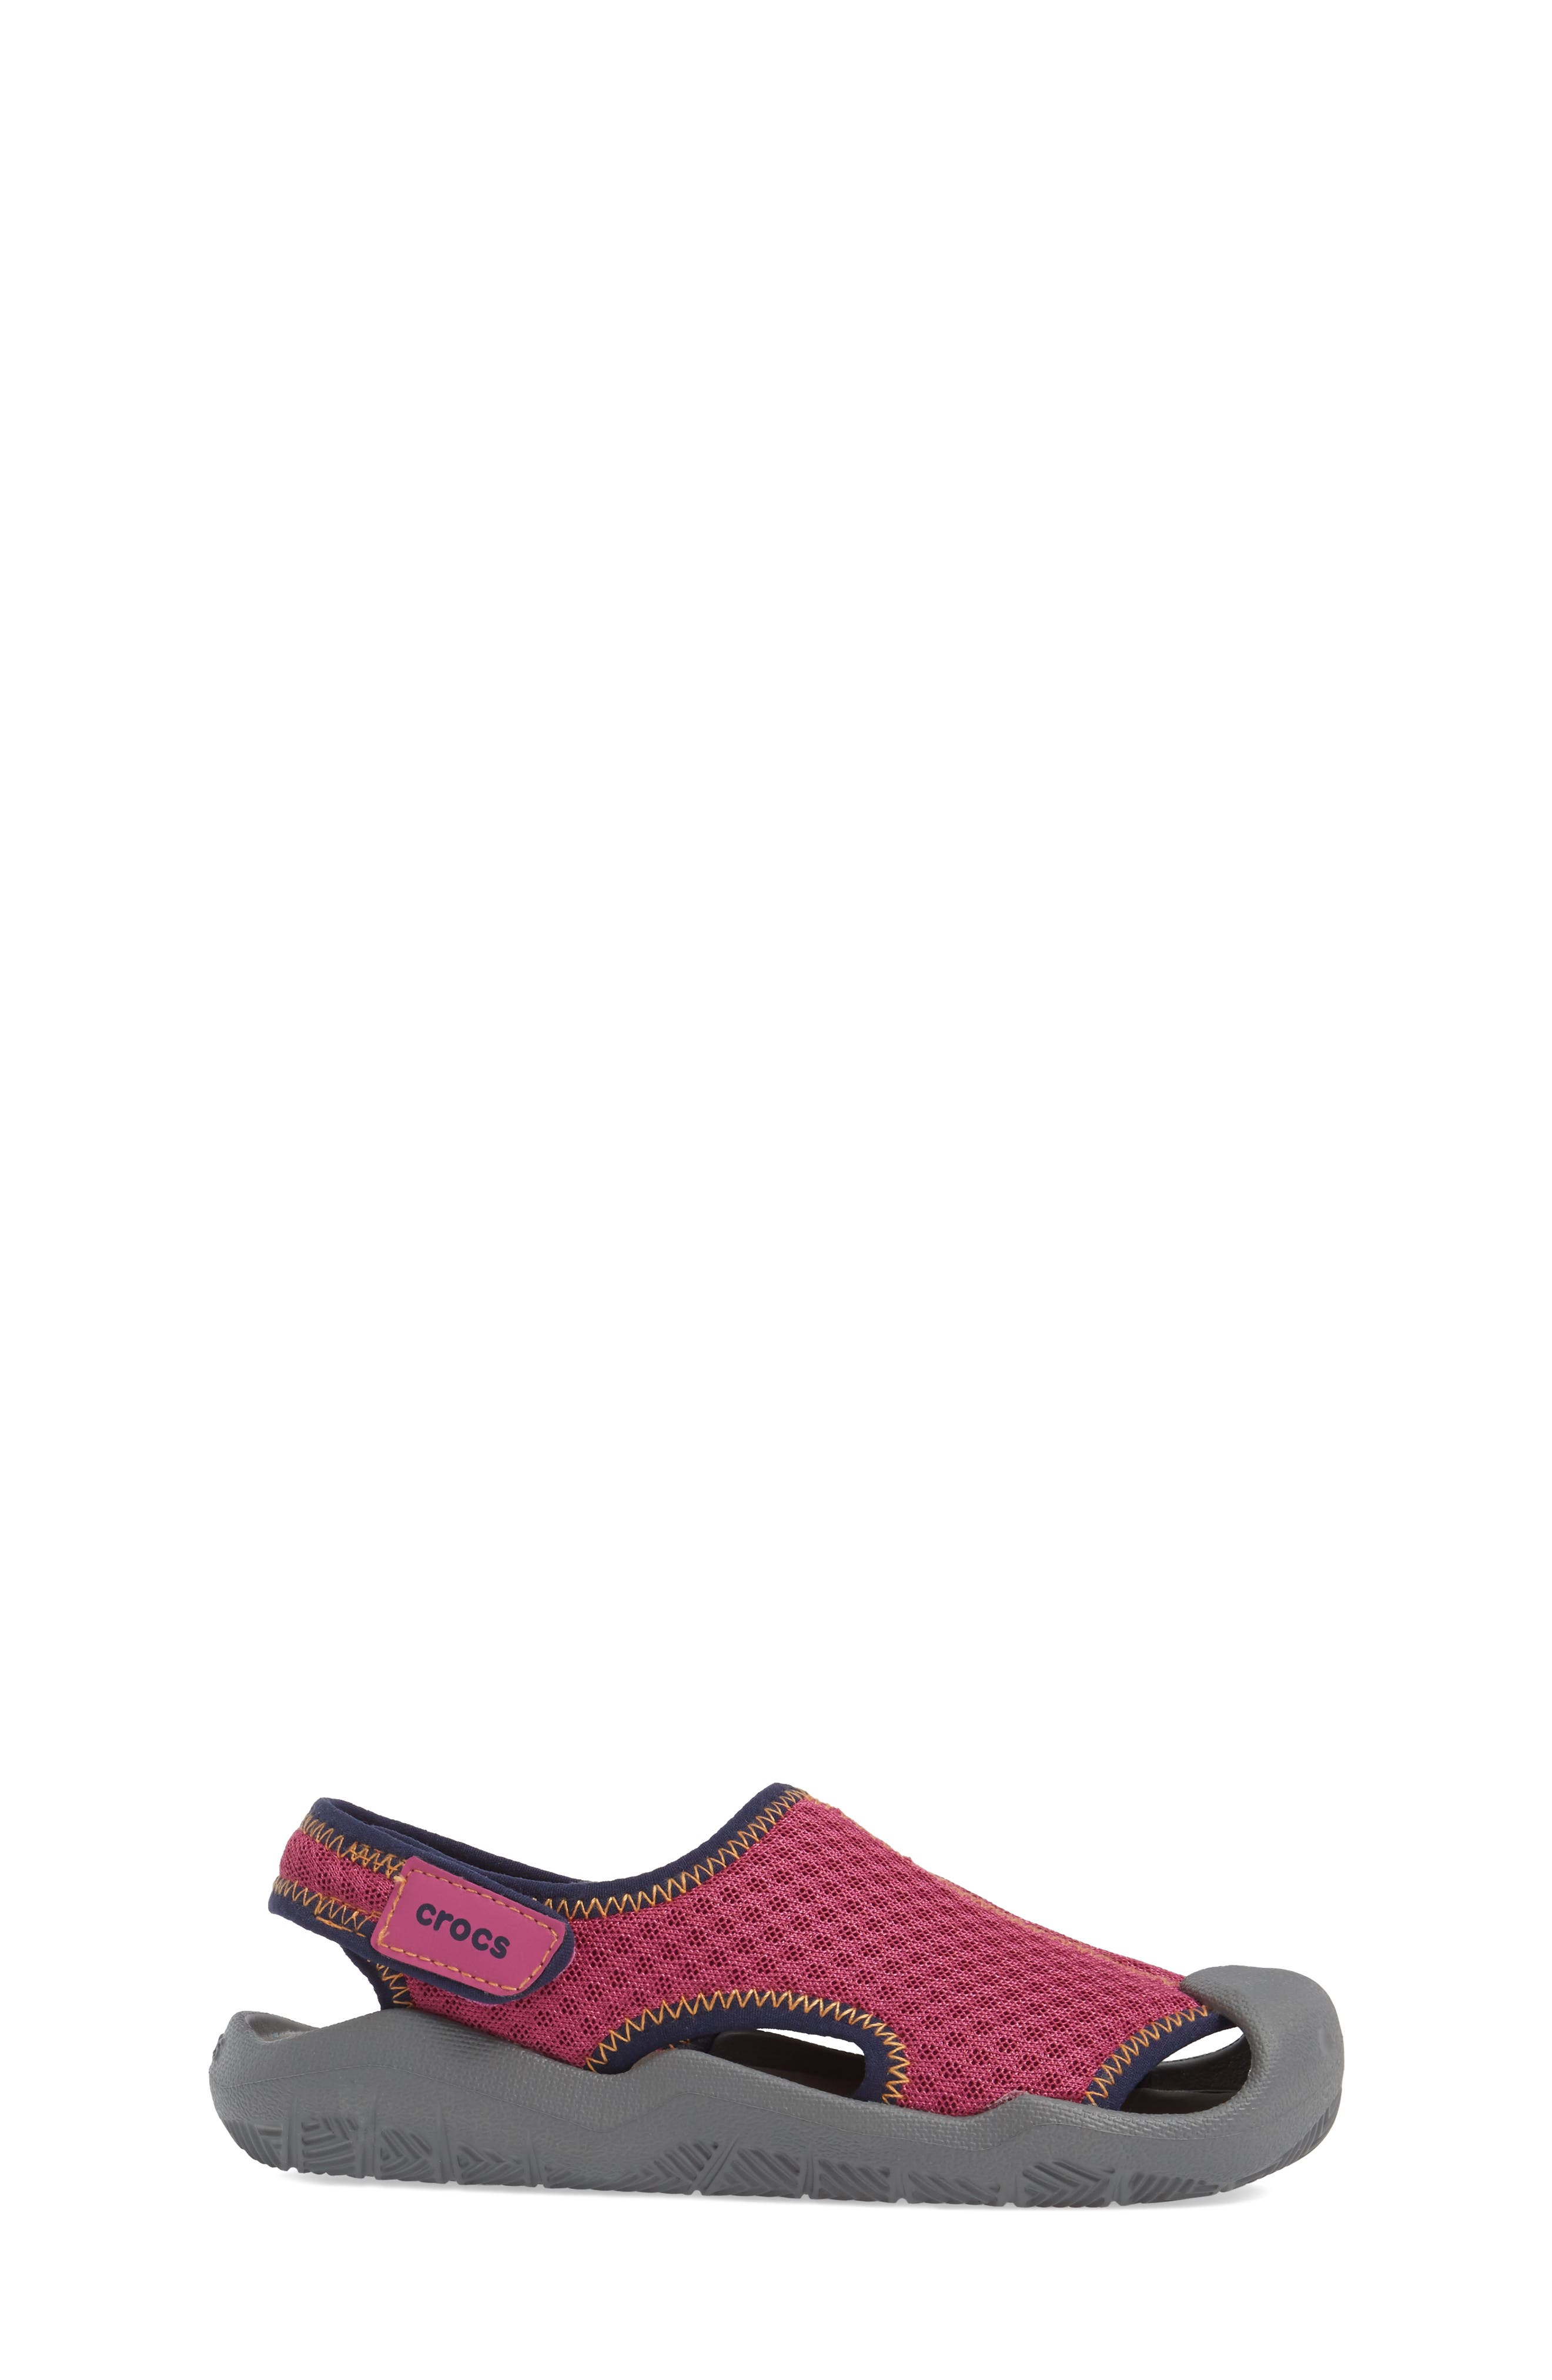 Swiftwater Sandal,                             Alternate thumbnail 16, color,